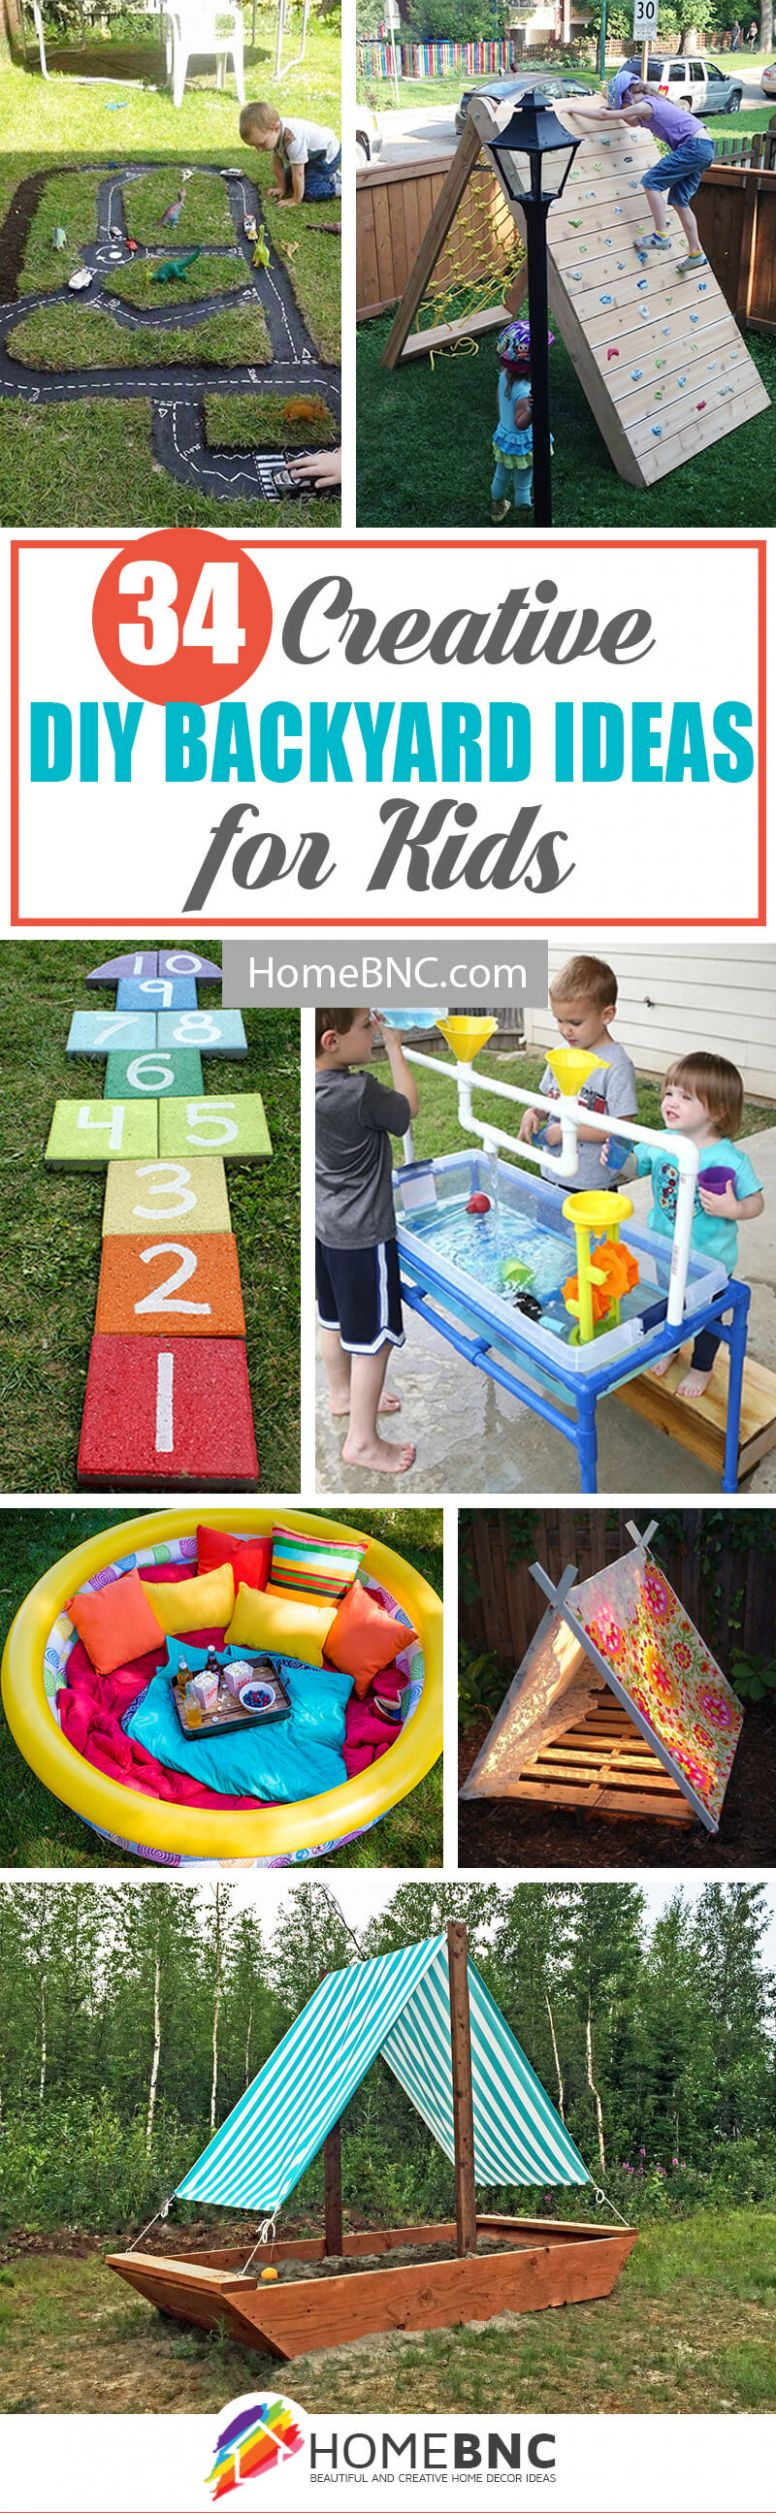 10 Best DIY Backyard Ideas and Designs for Kids in 10 - backyard ideas for kids